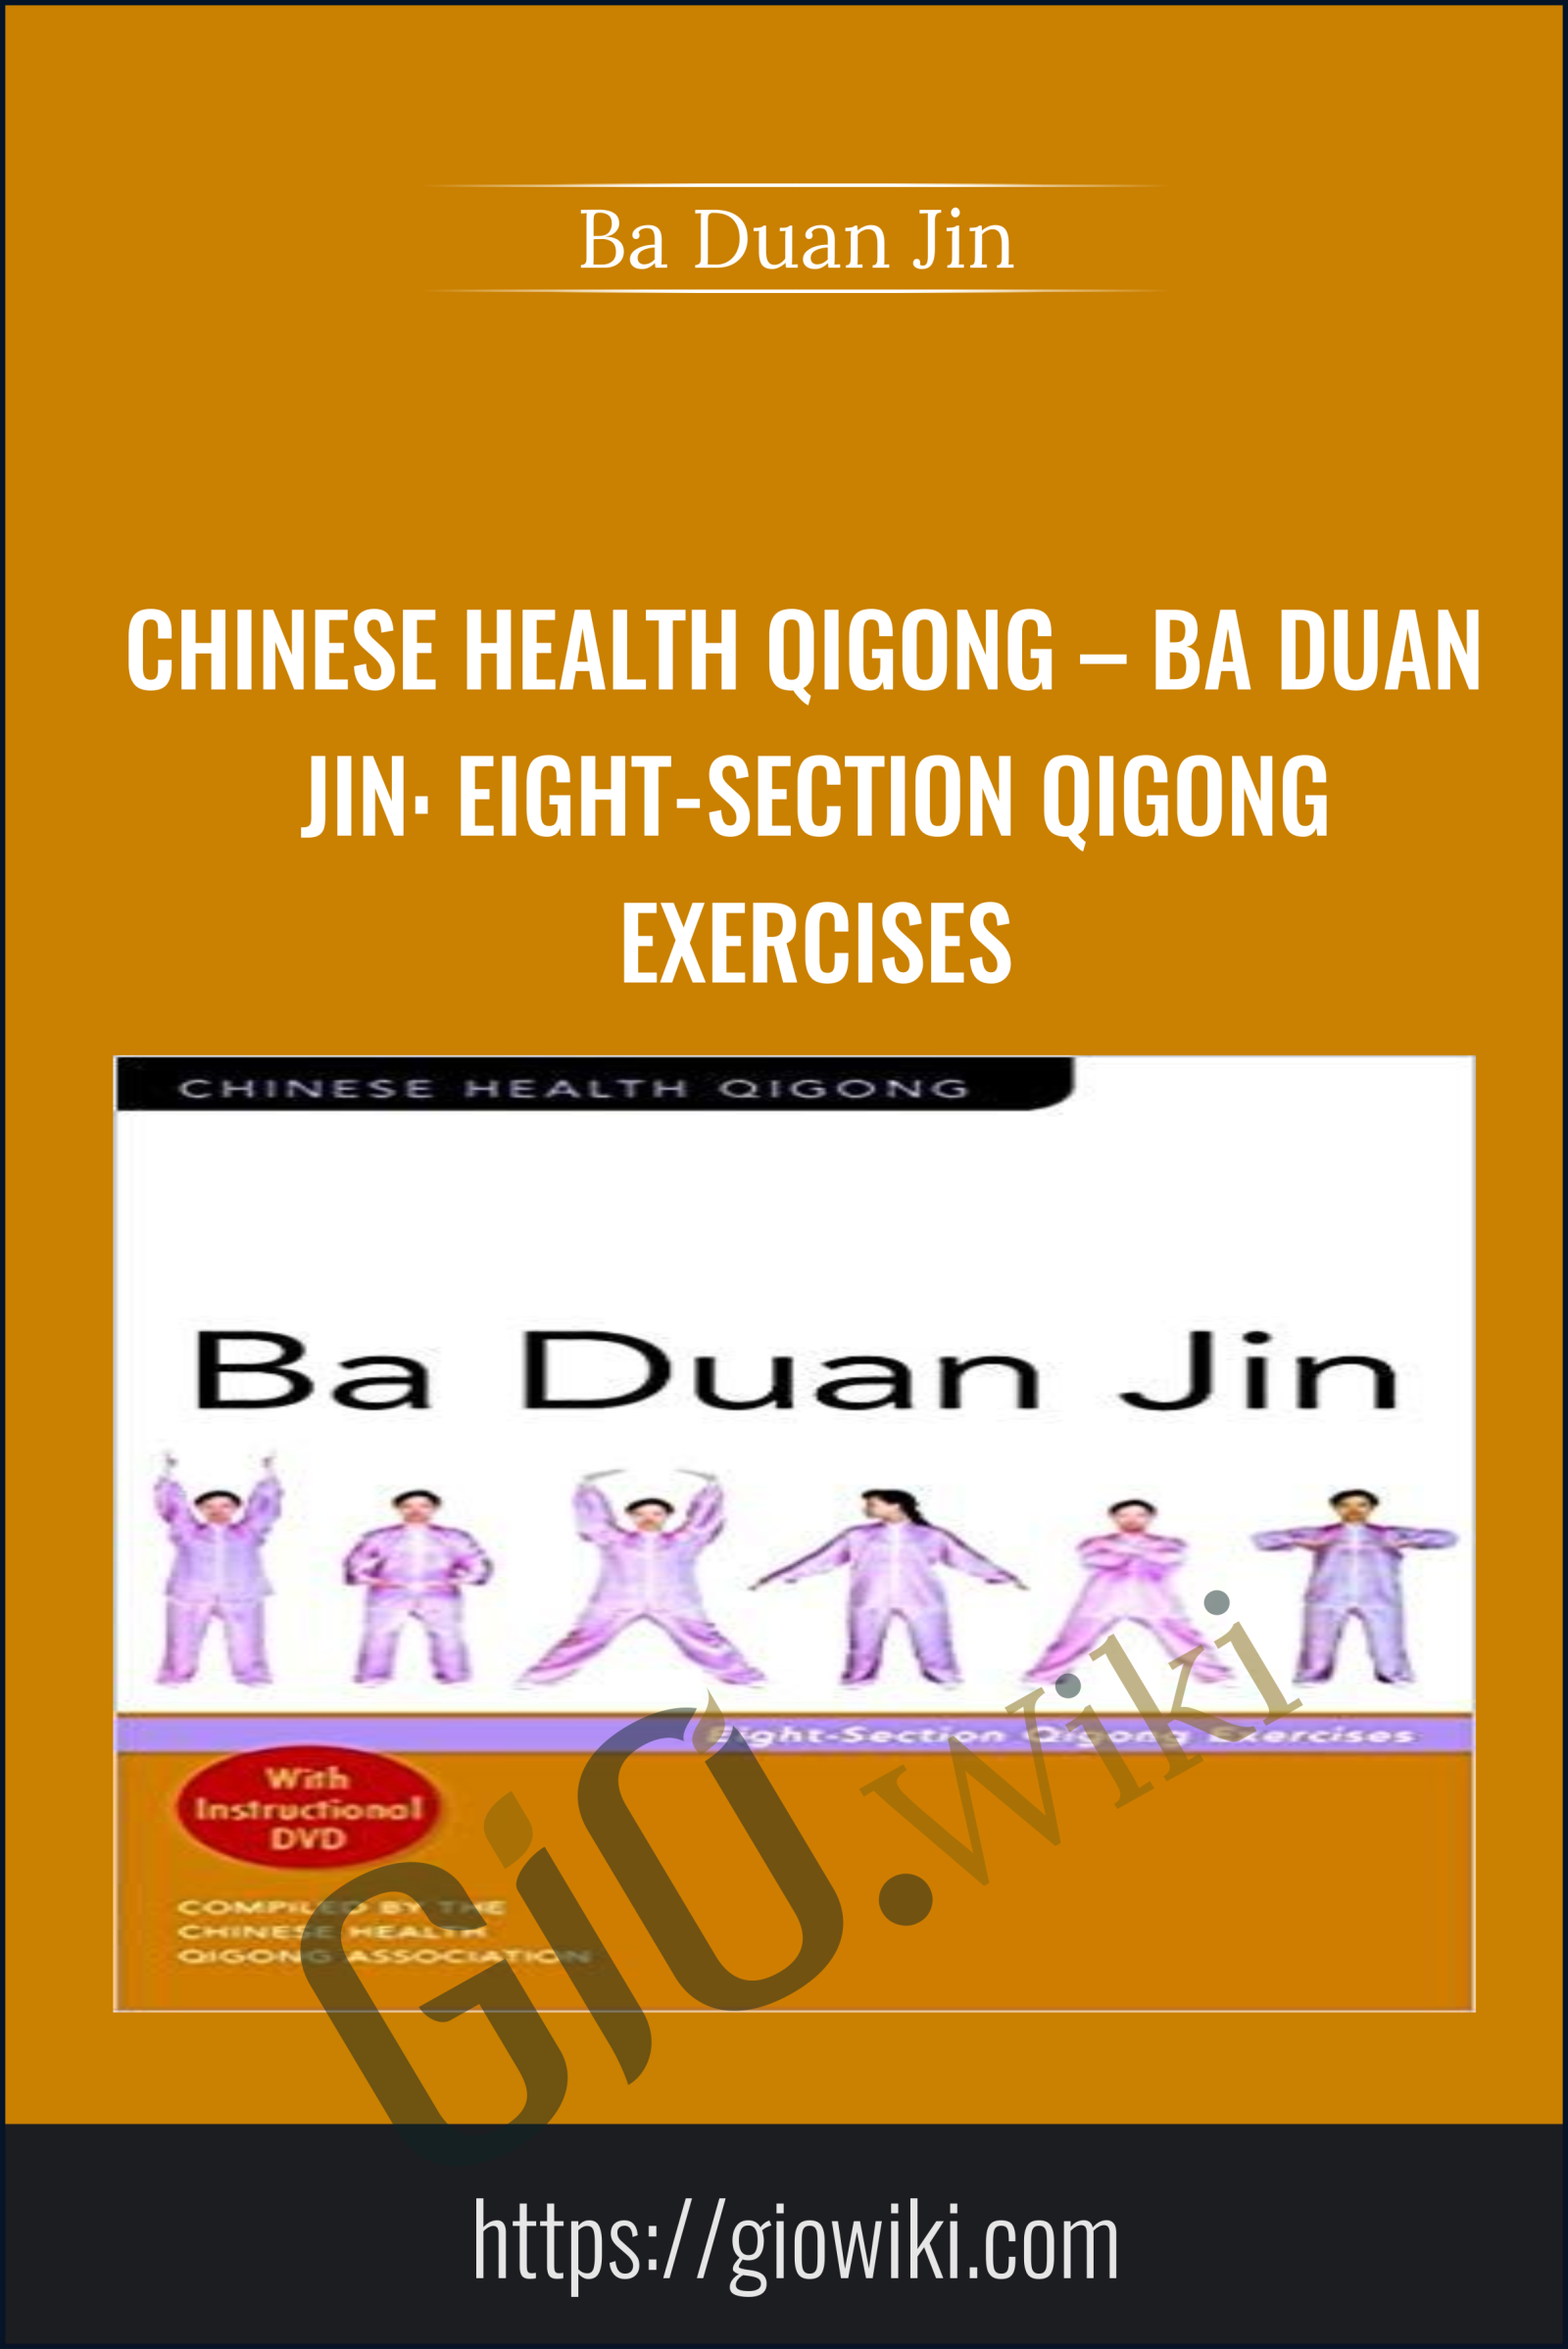 Chinese Health Qigong – Ba Duan Jin: Eight-Section Qigong Exercises - Ba Duan Jin